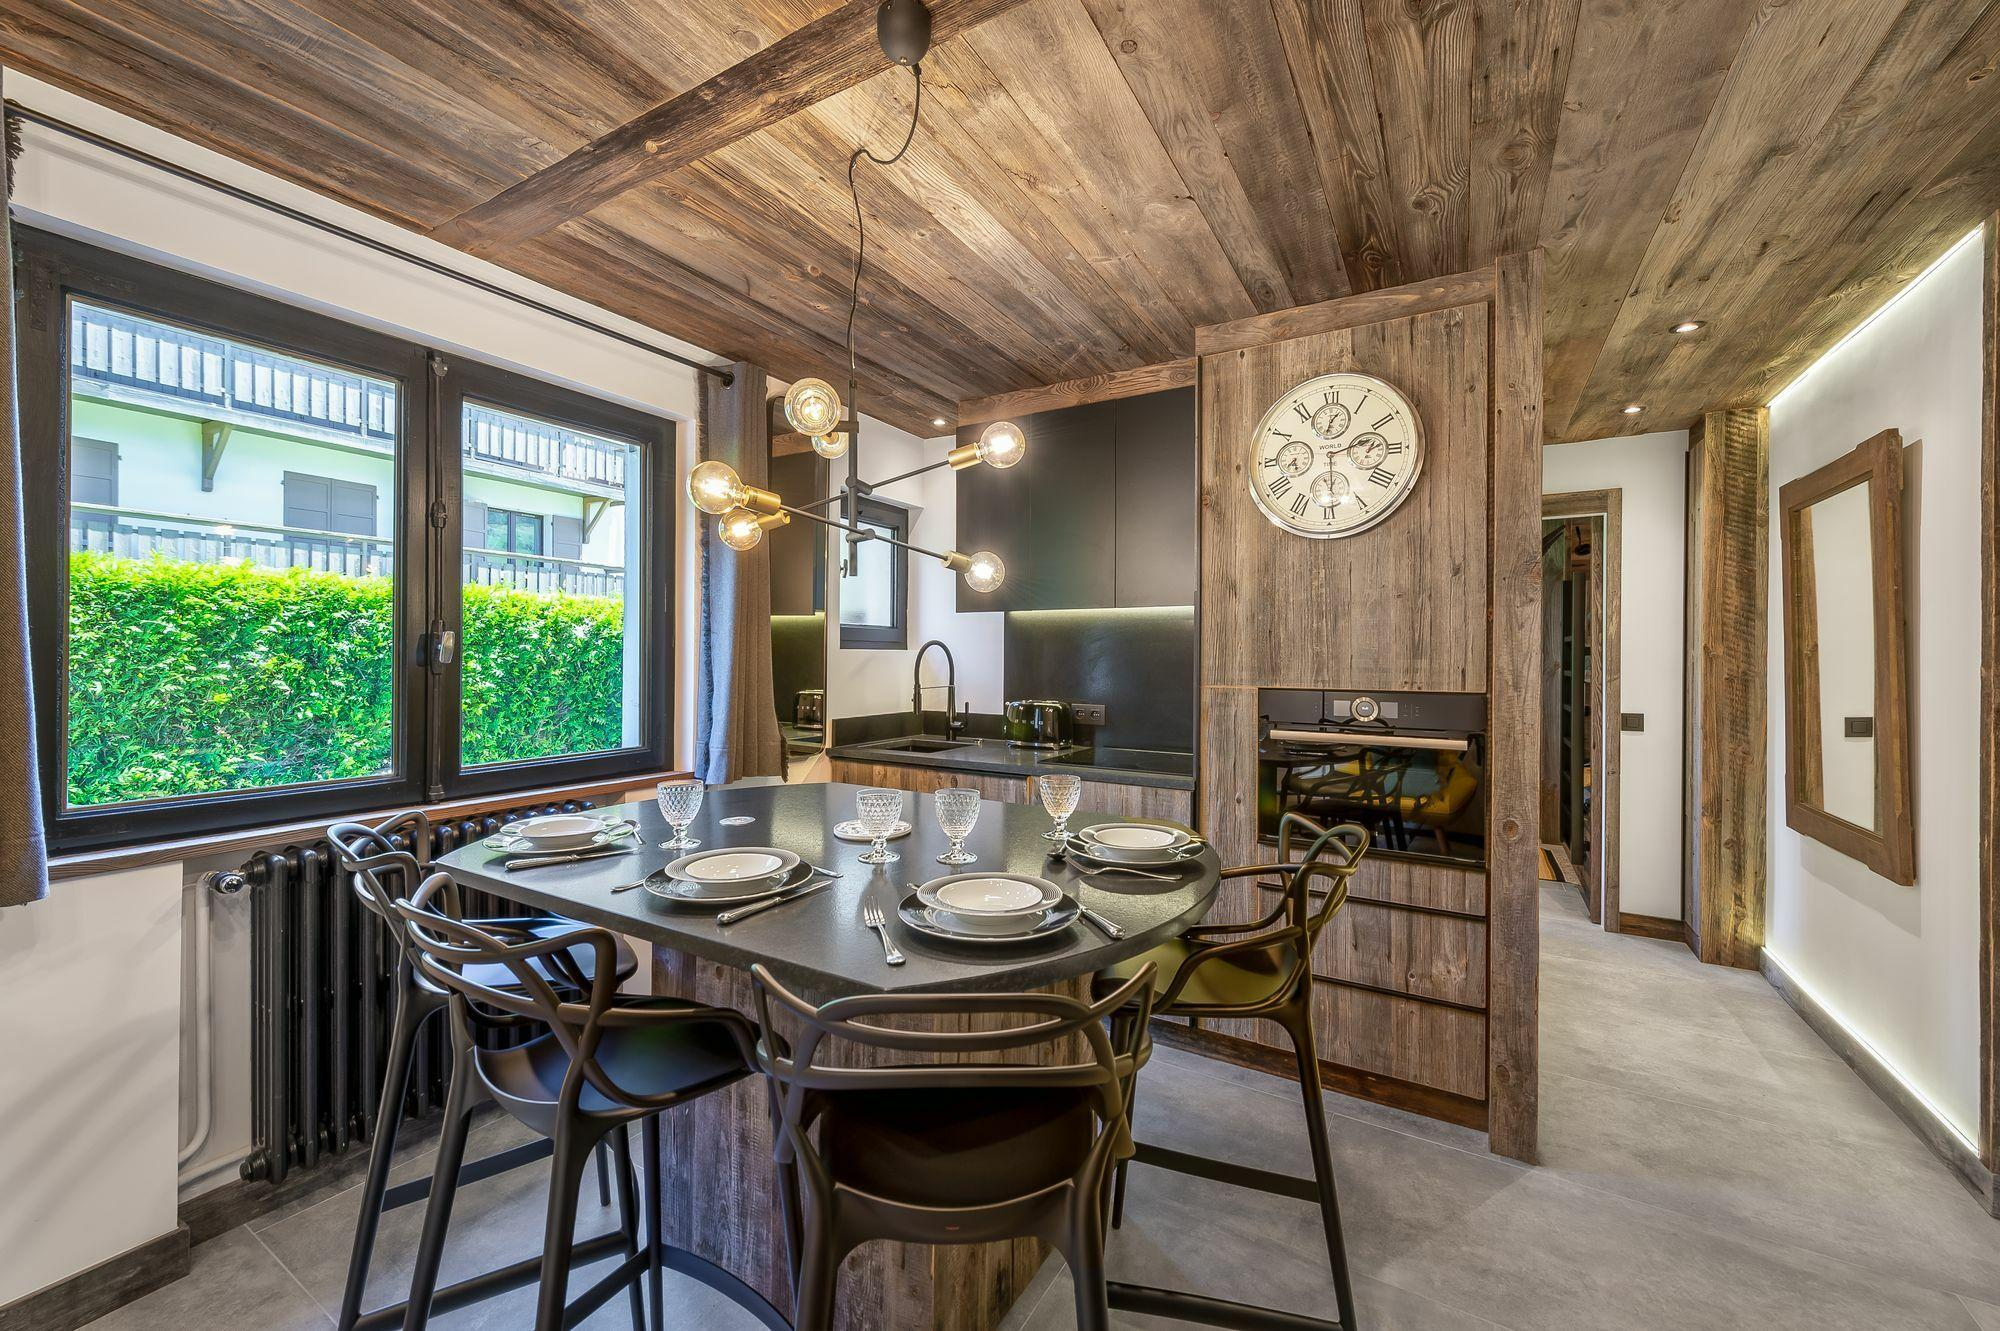 Les Peupliers Accommodation in Megeve